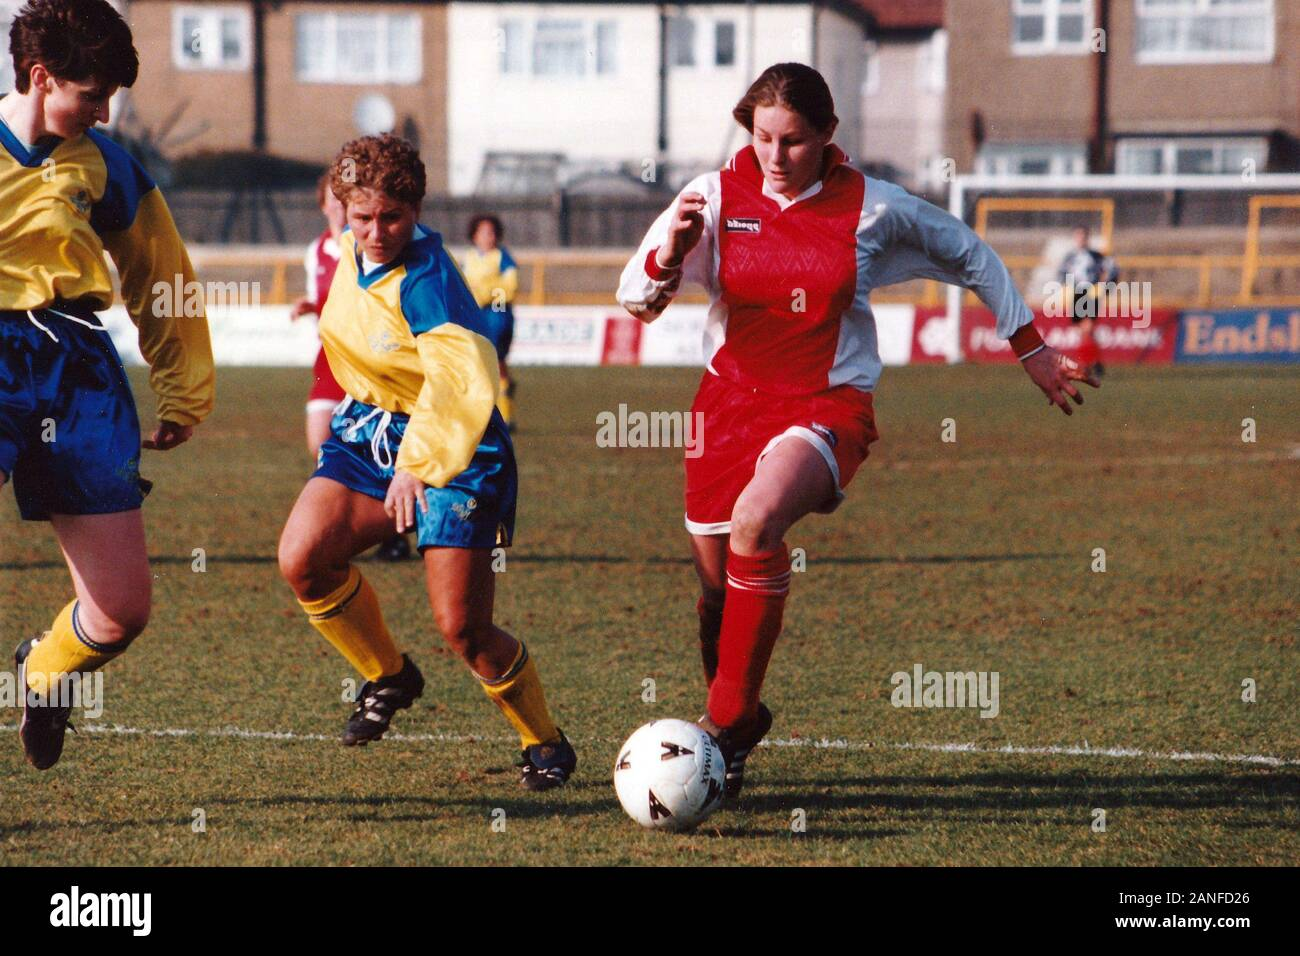 Kelly Smith of Wembley during Doncaster Belles vs Wembley Ladies, FA Women's Premier League Cup Final Football at Underhill, Barnet FC on 10th March 1 Stock Photo